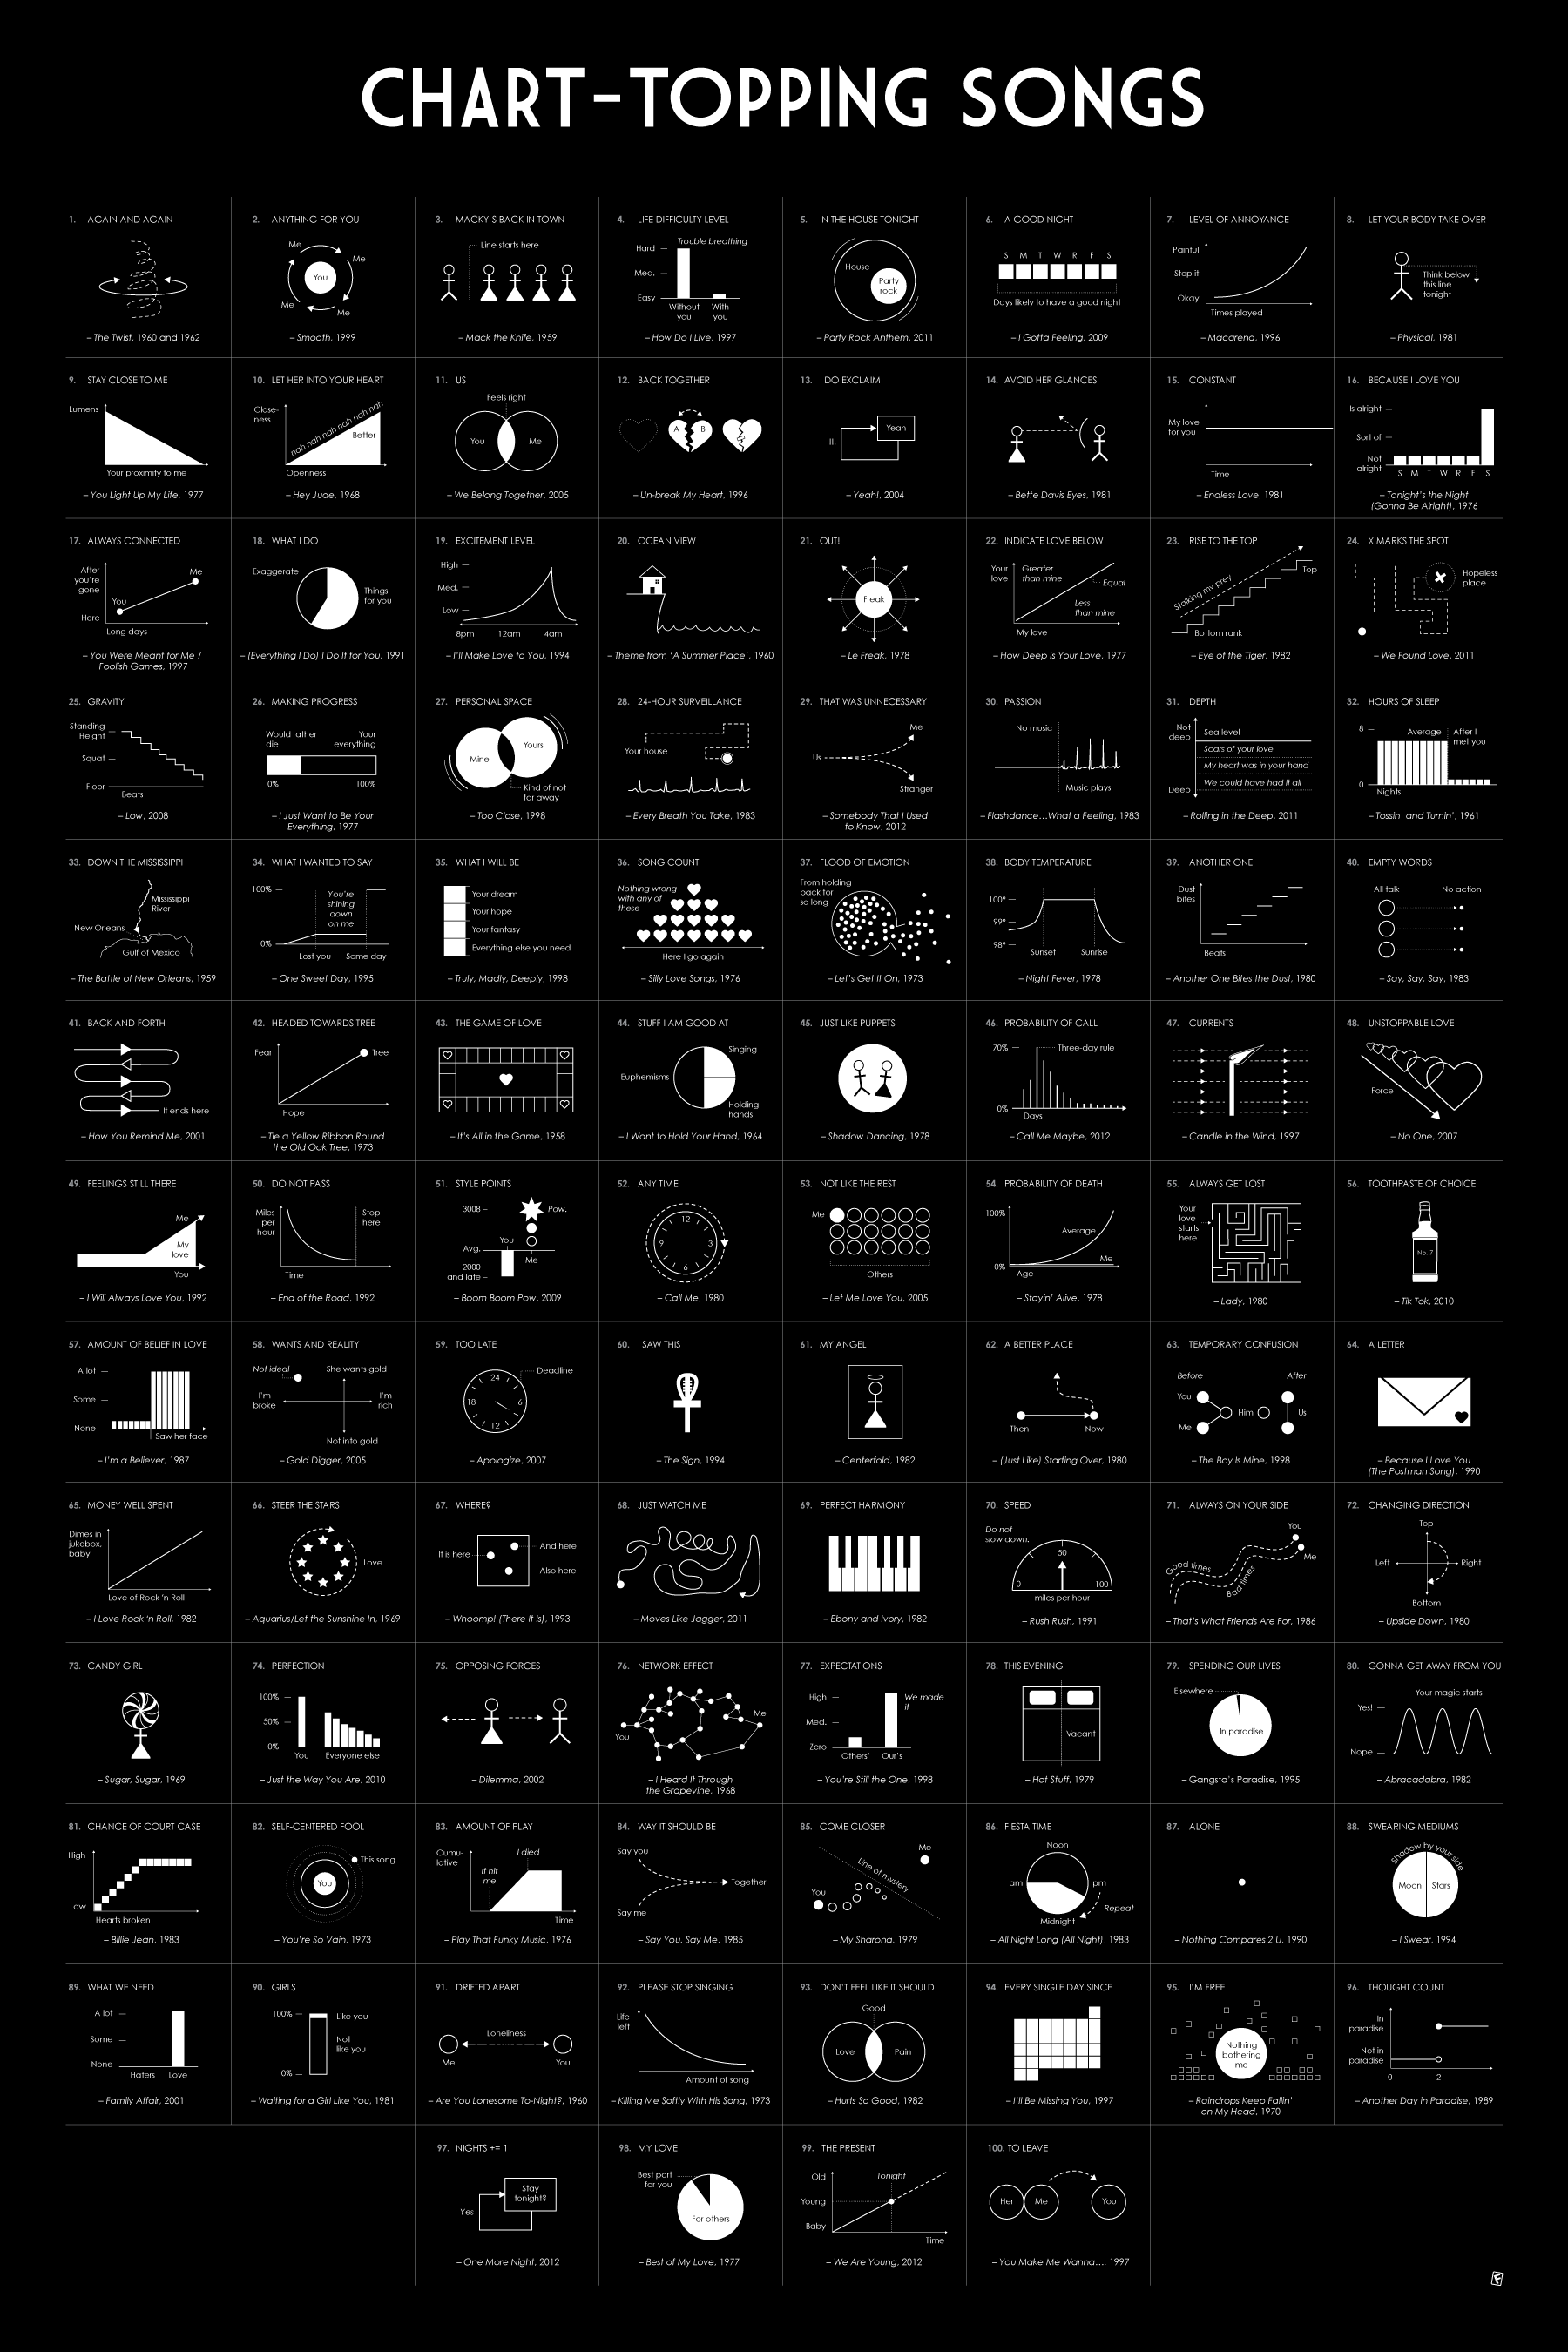 The Top 100 Songs Of All Time As Graphs And Diagrams